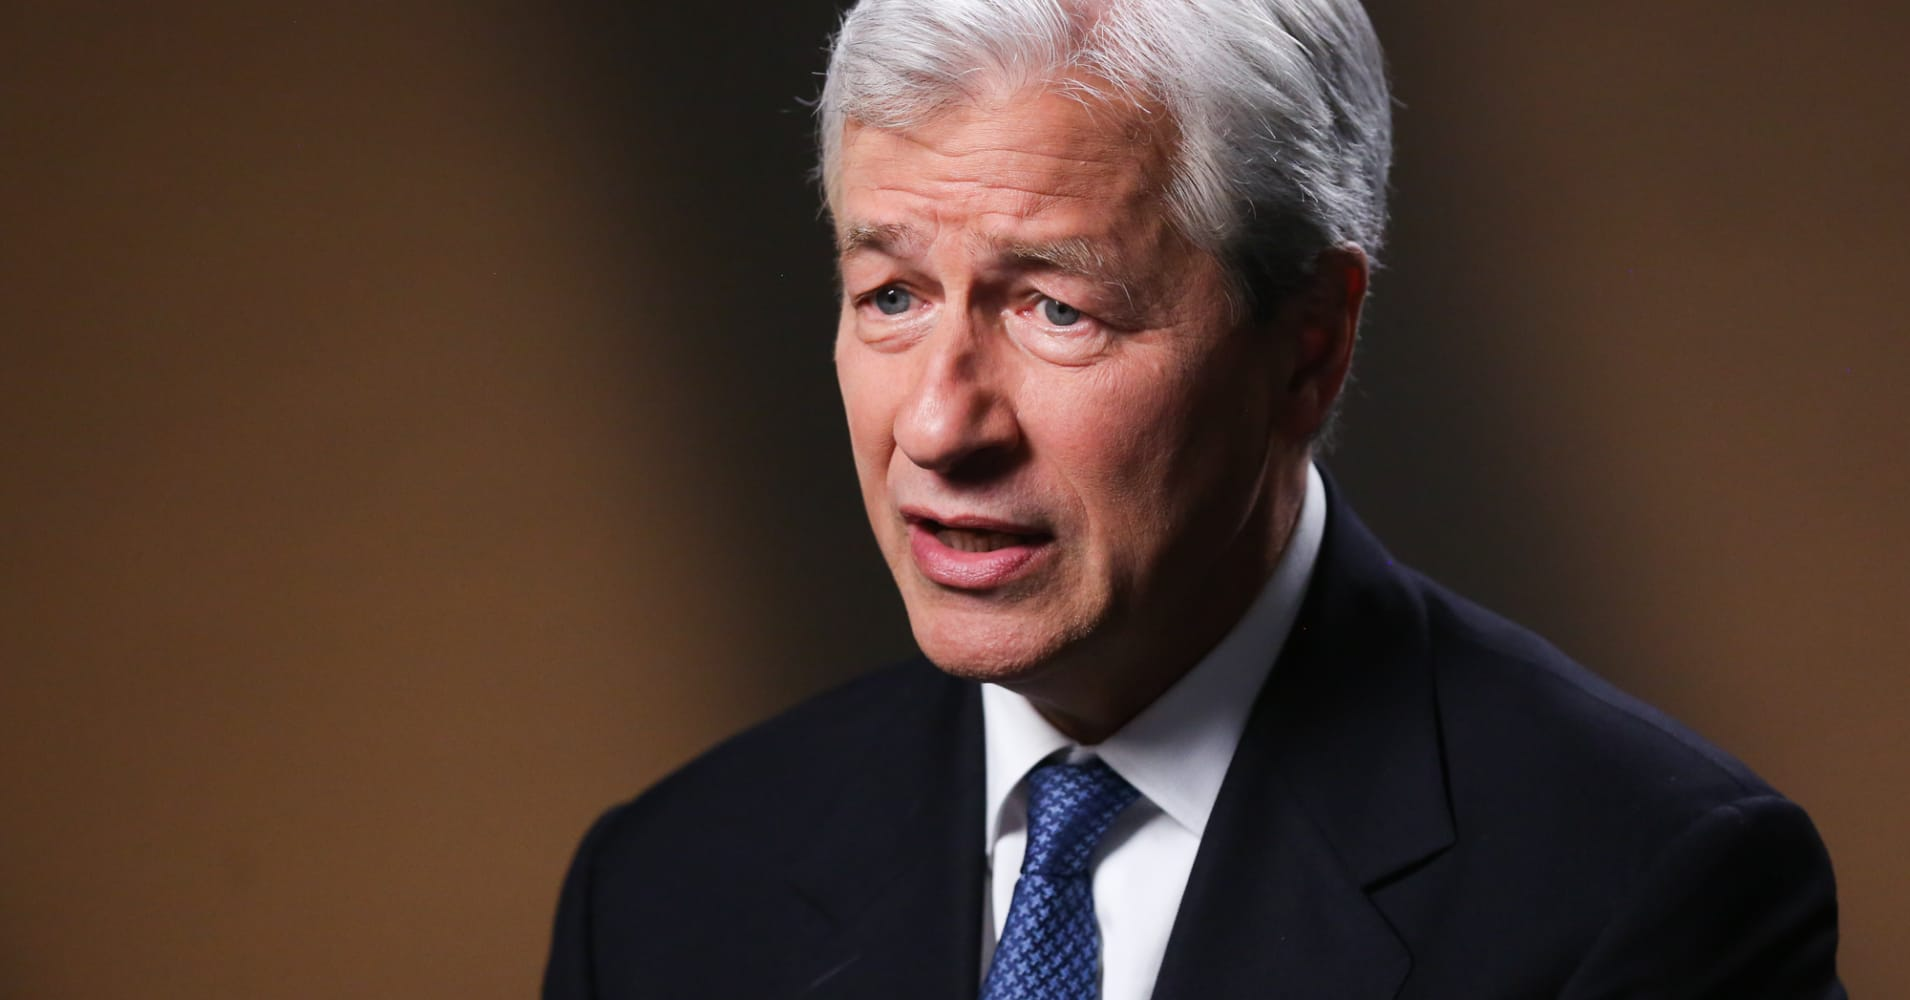 Jamie Dimon: 'The social needs of far too many of our citizens are not being met'